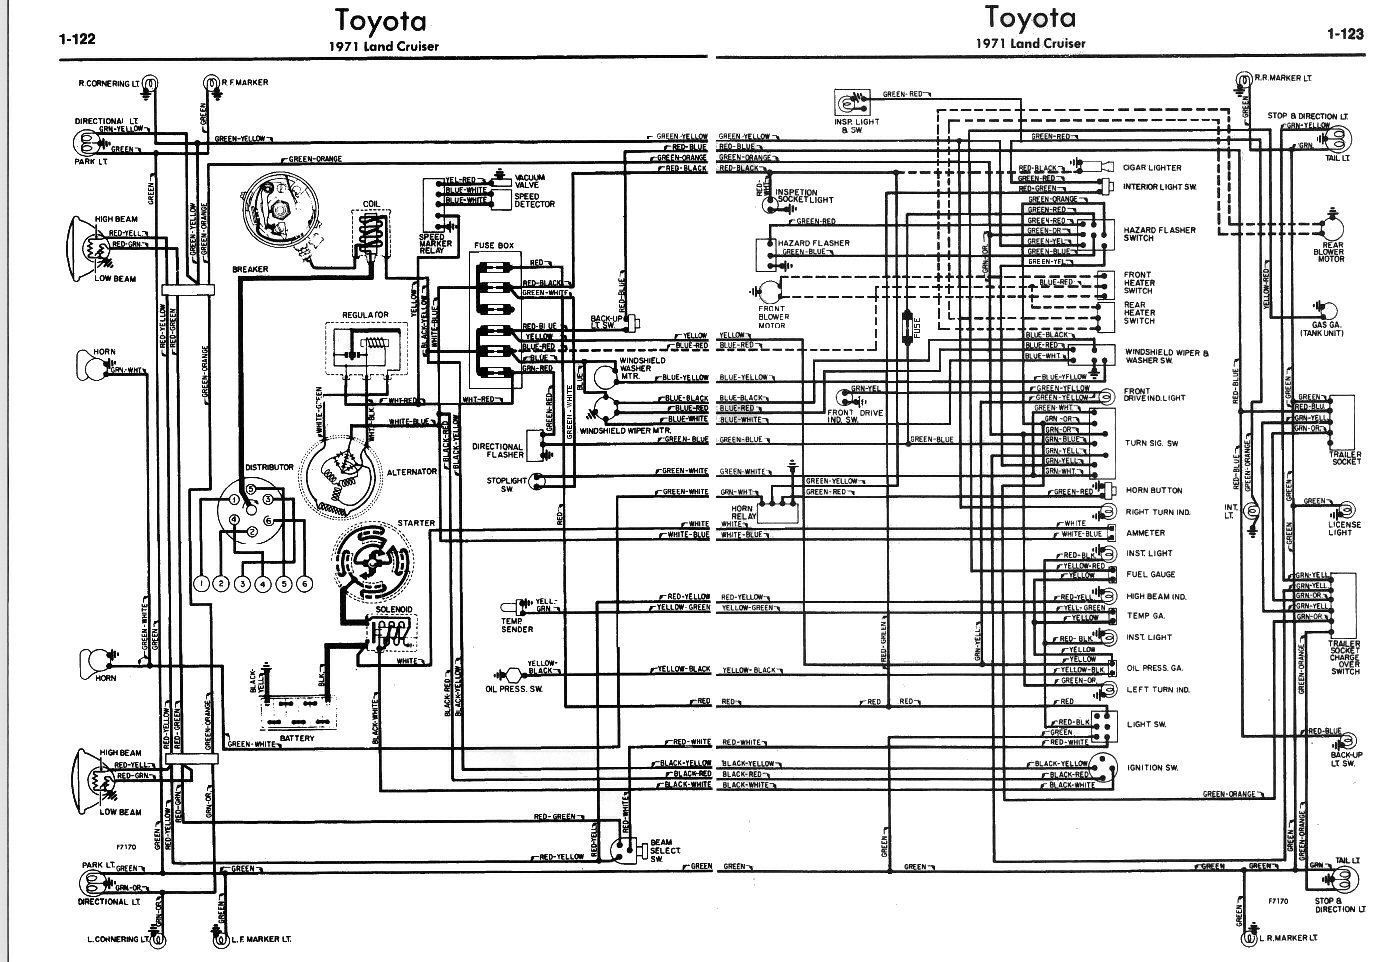 Coolerman's Electrical Schematic and FSM File RetrievalGlobal Software, Inc.